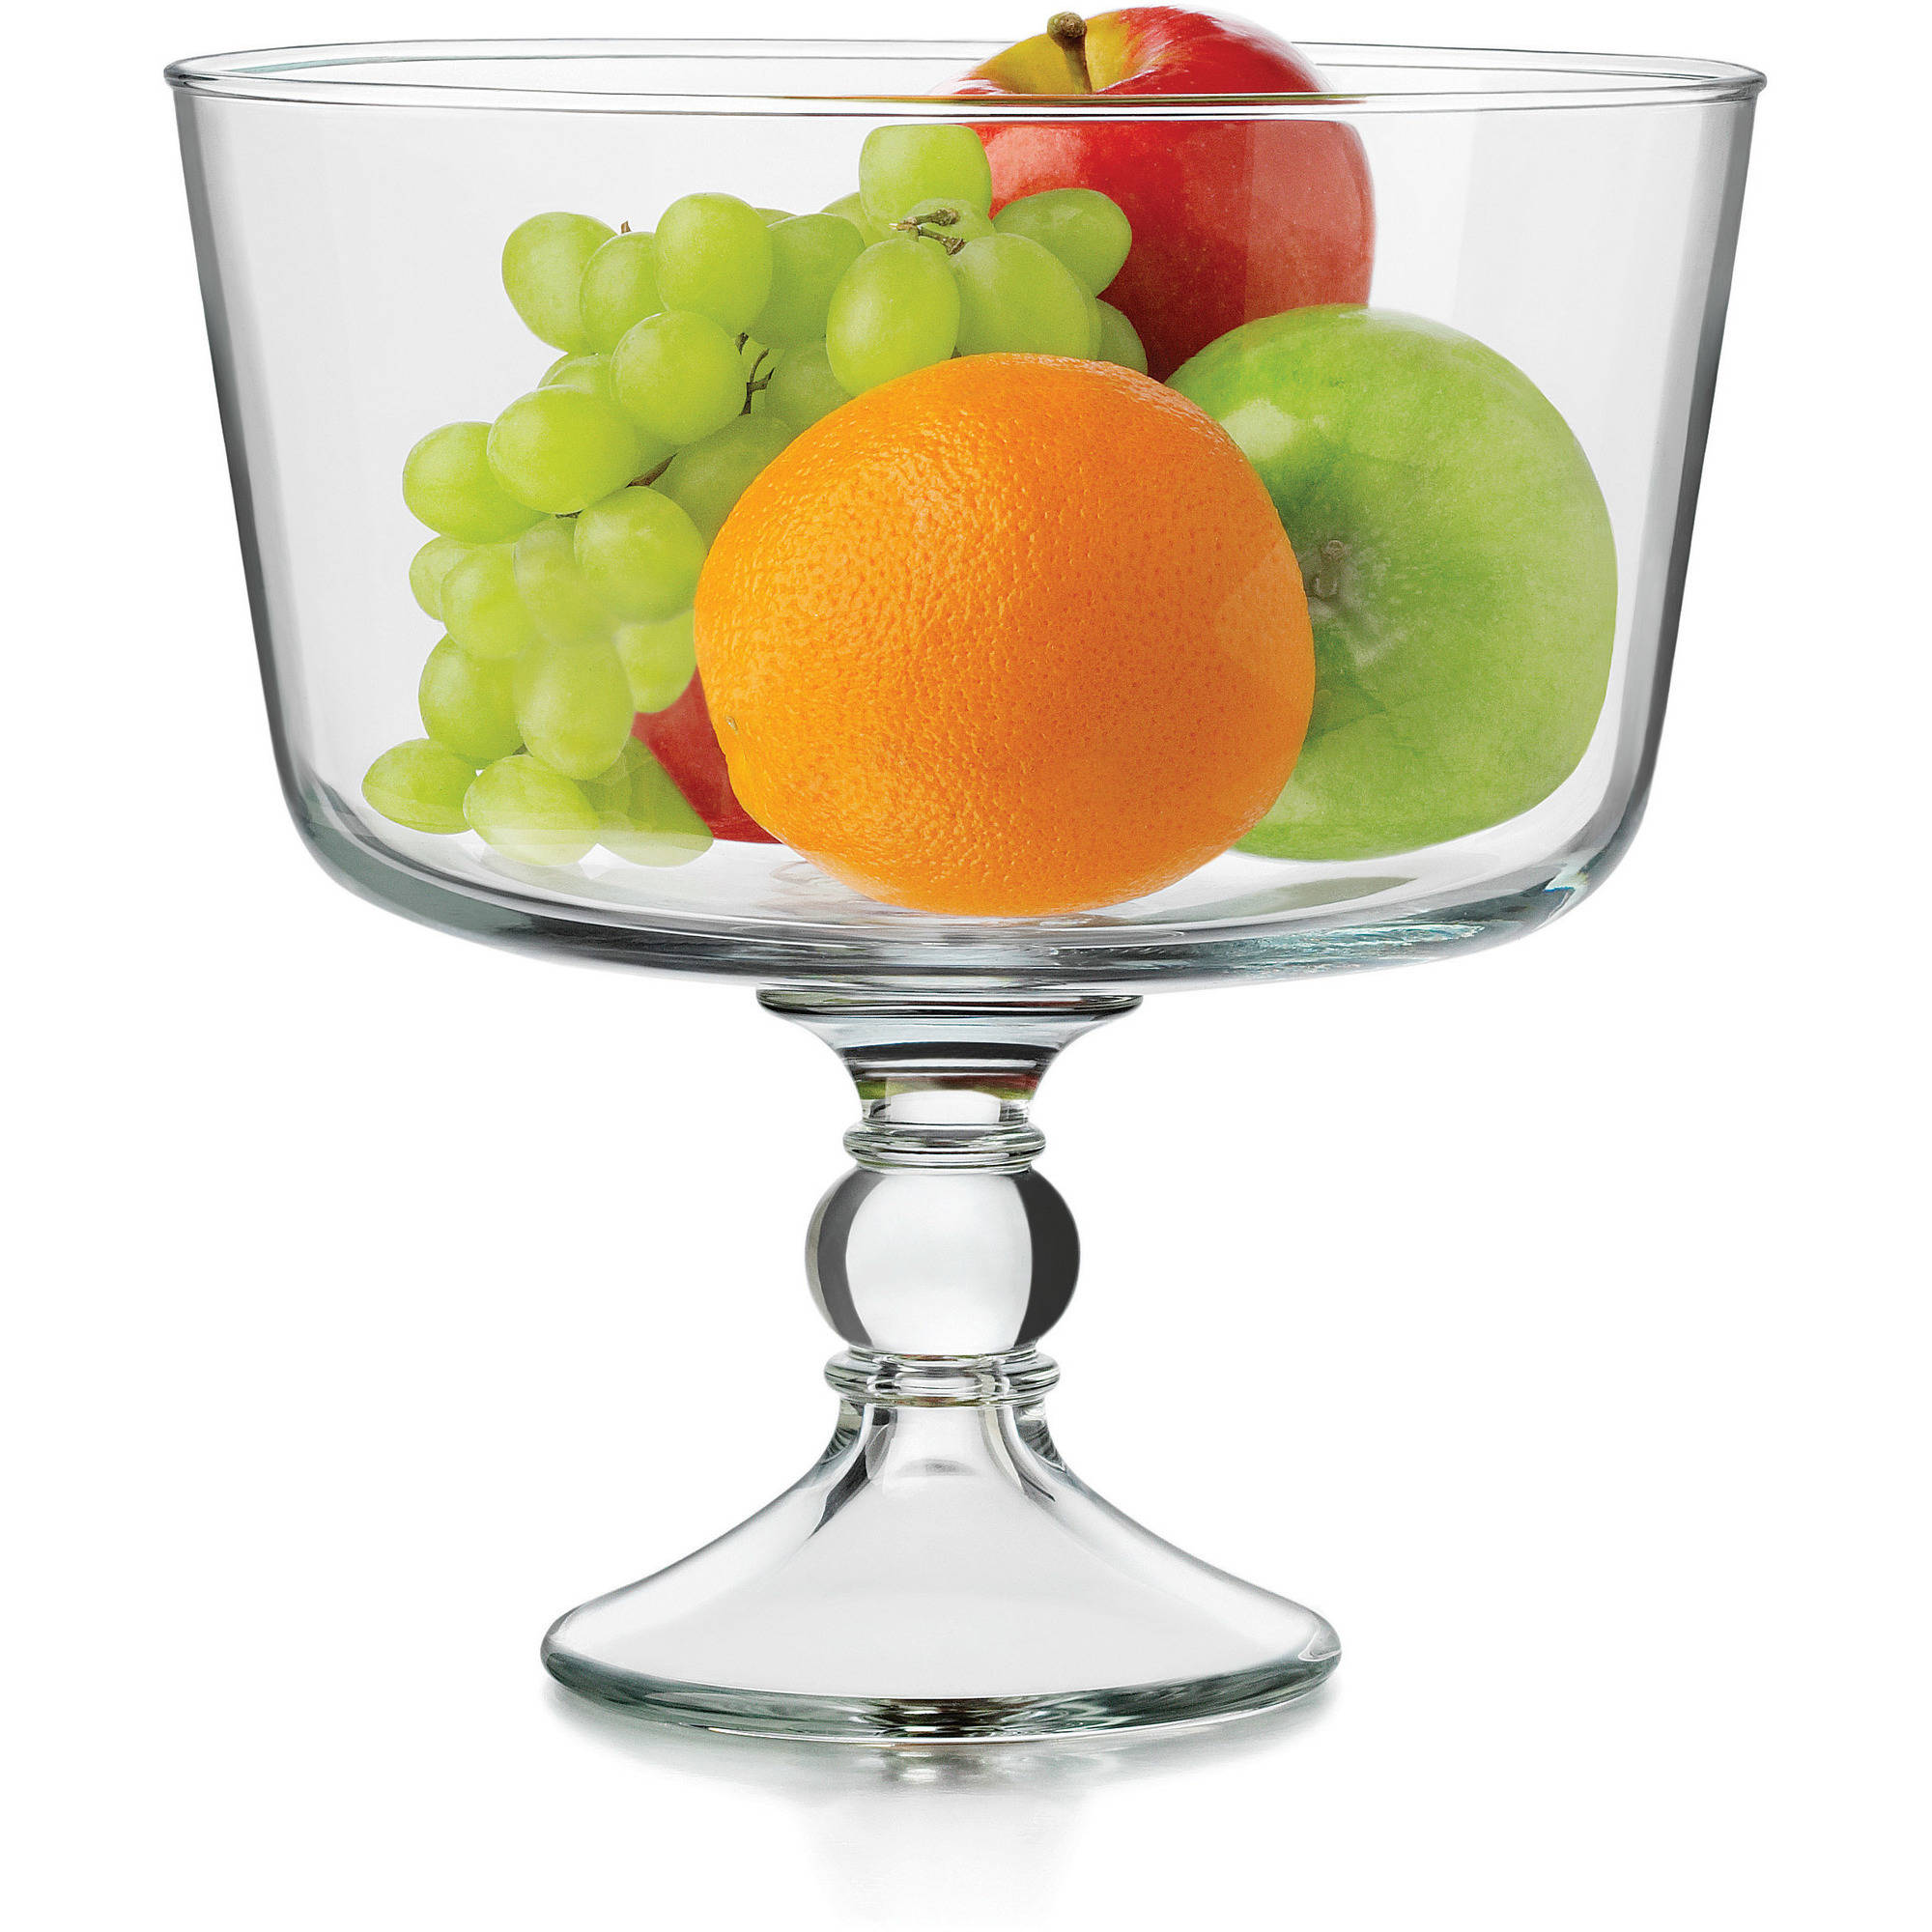 Libbey Trifle Bowl